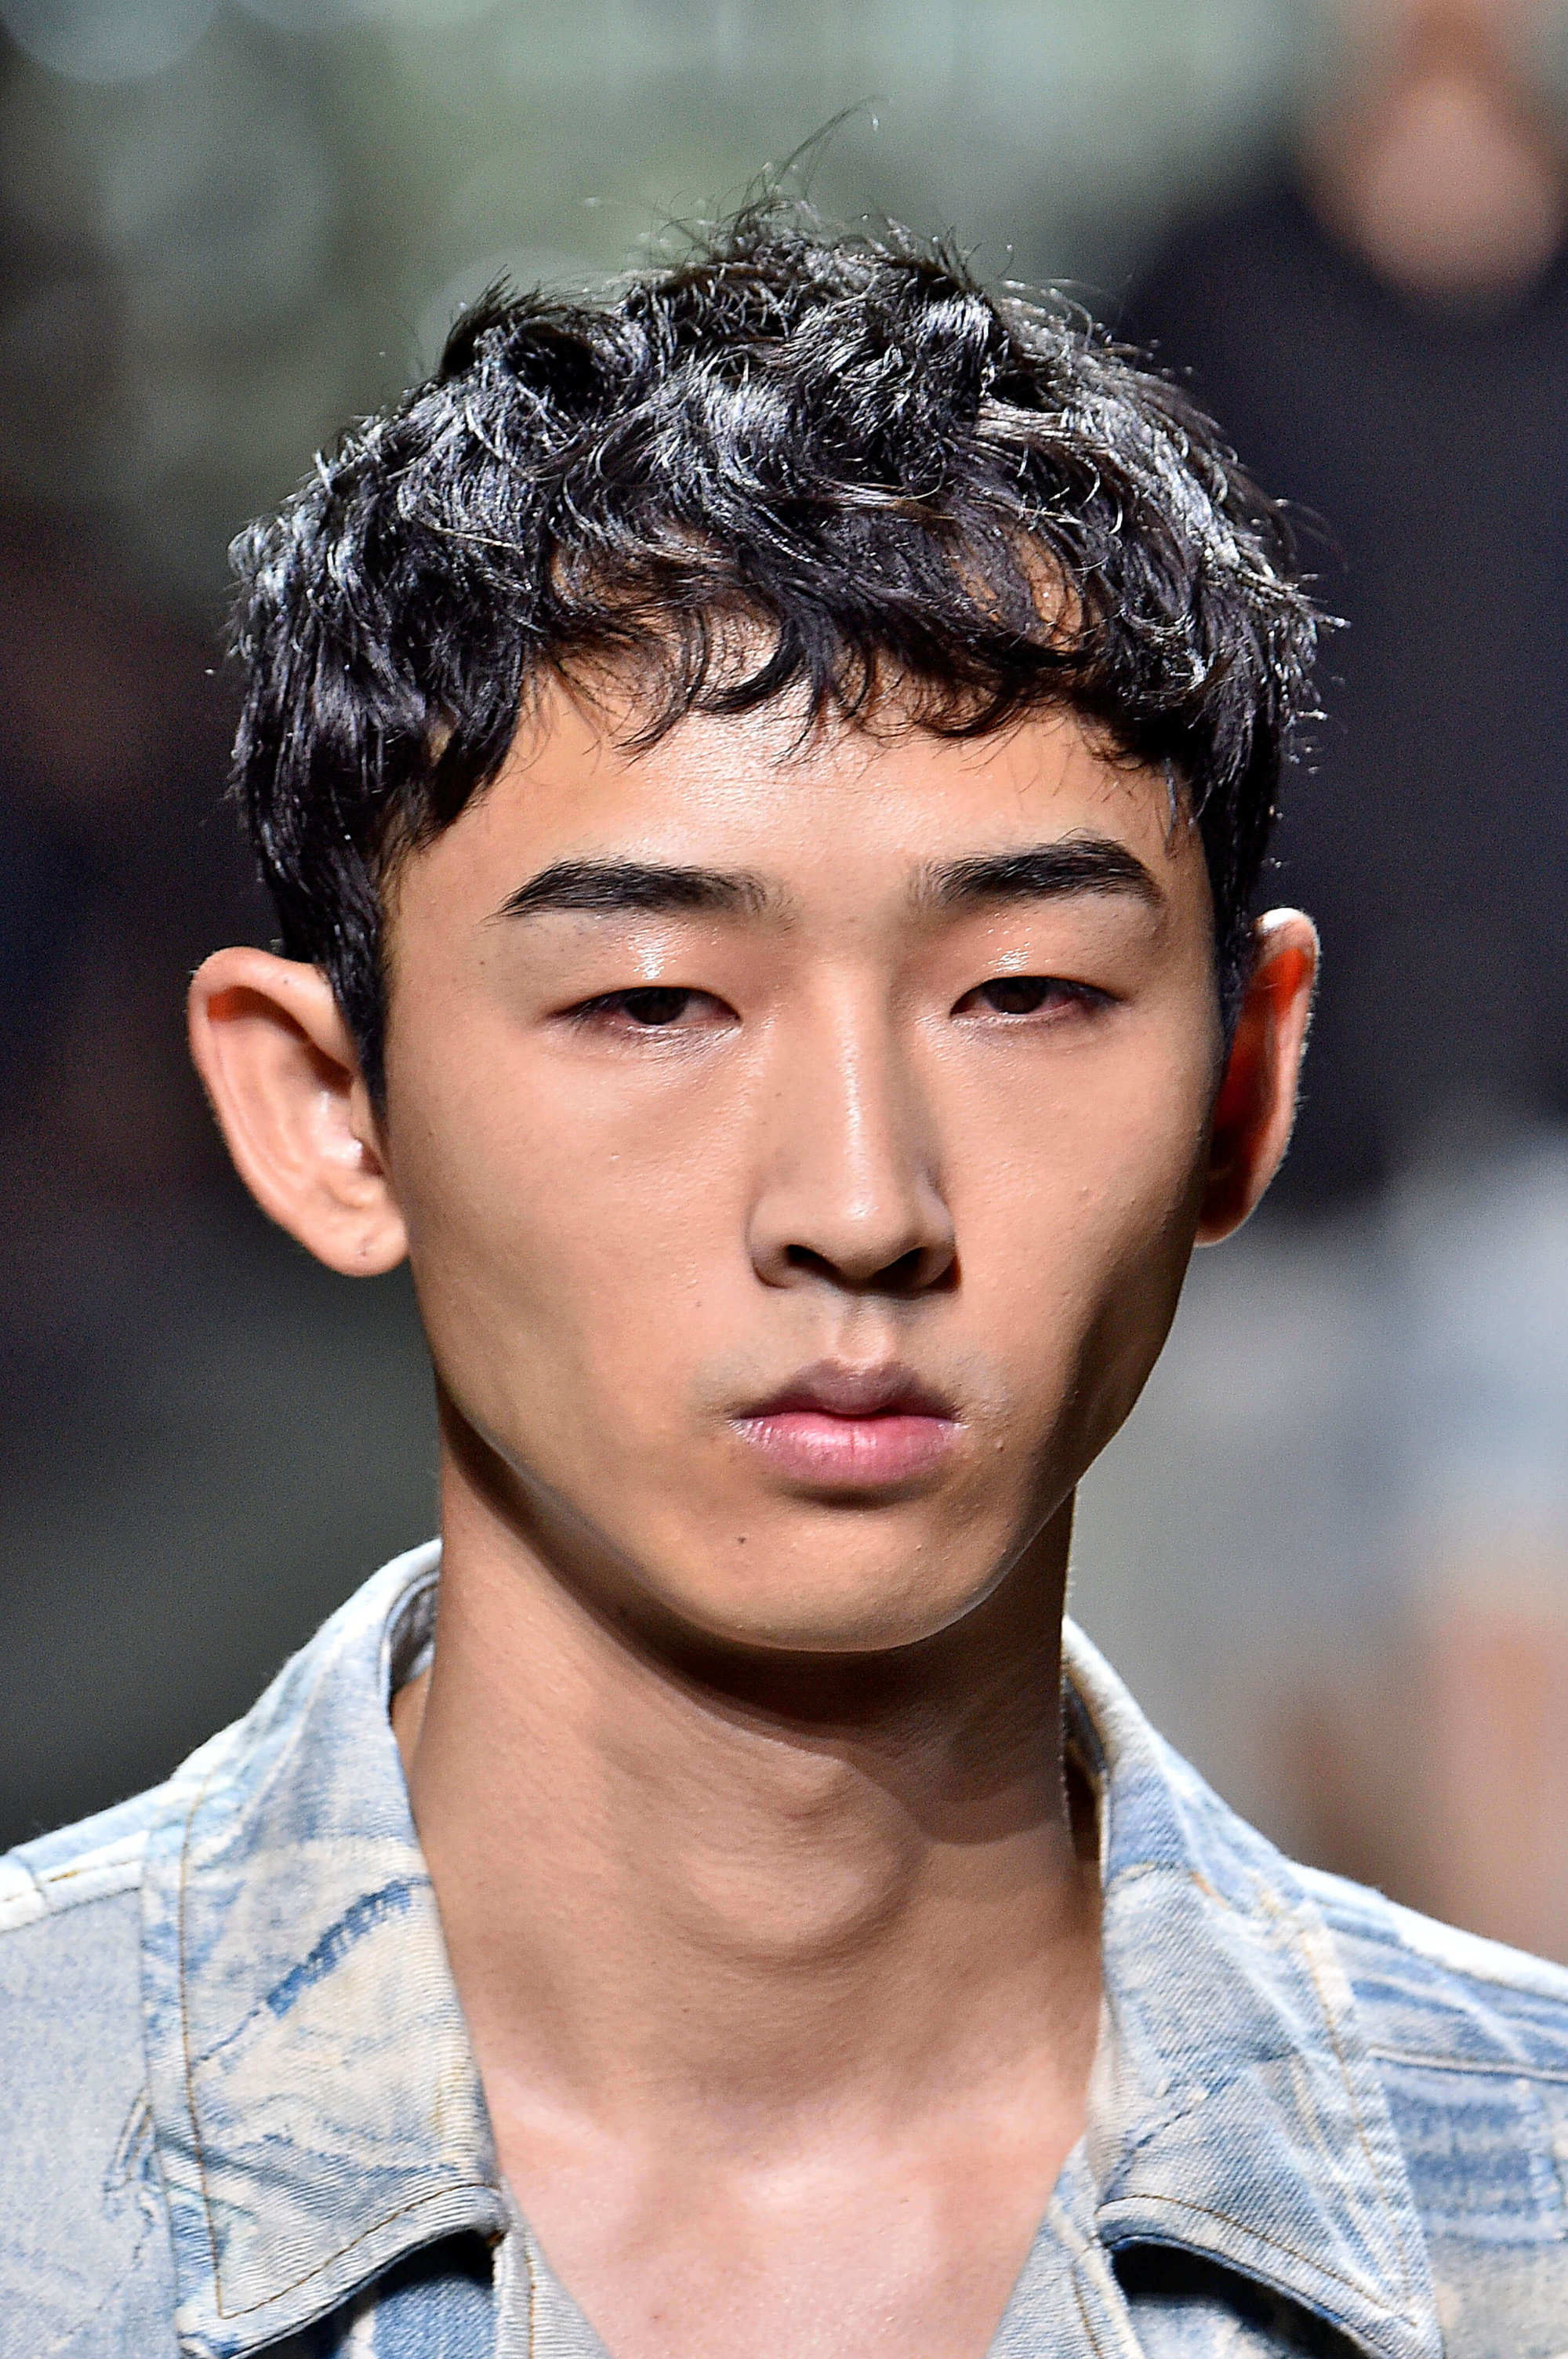 curly men's undercut hairstyle: messy hair